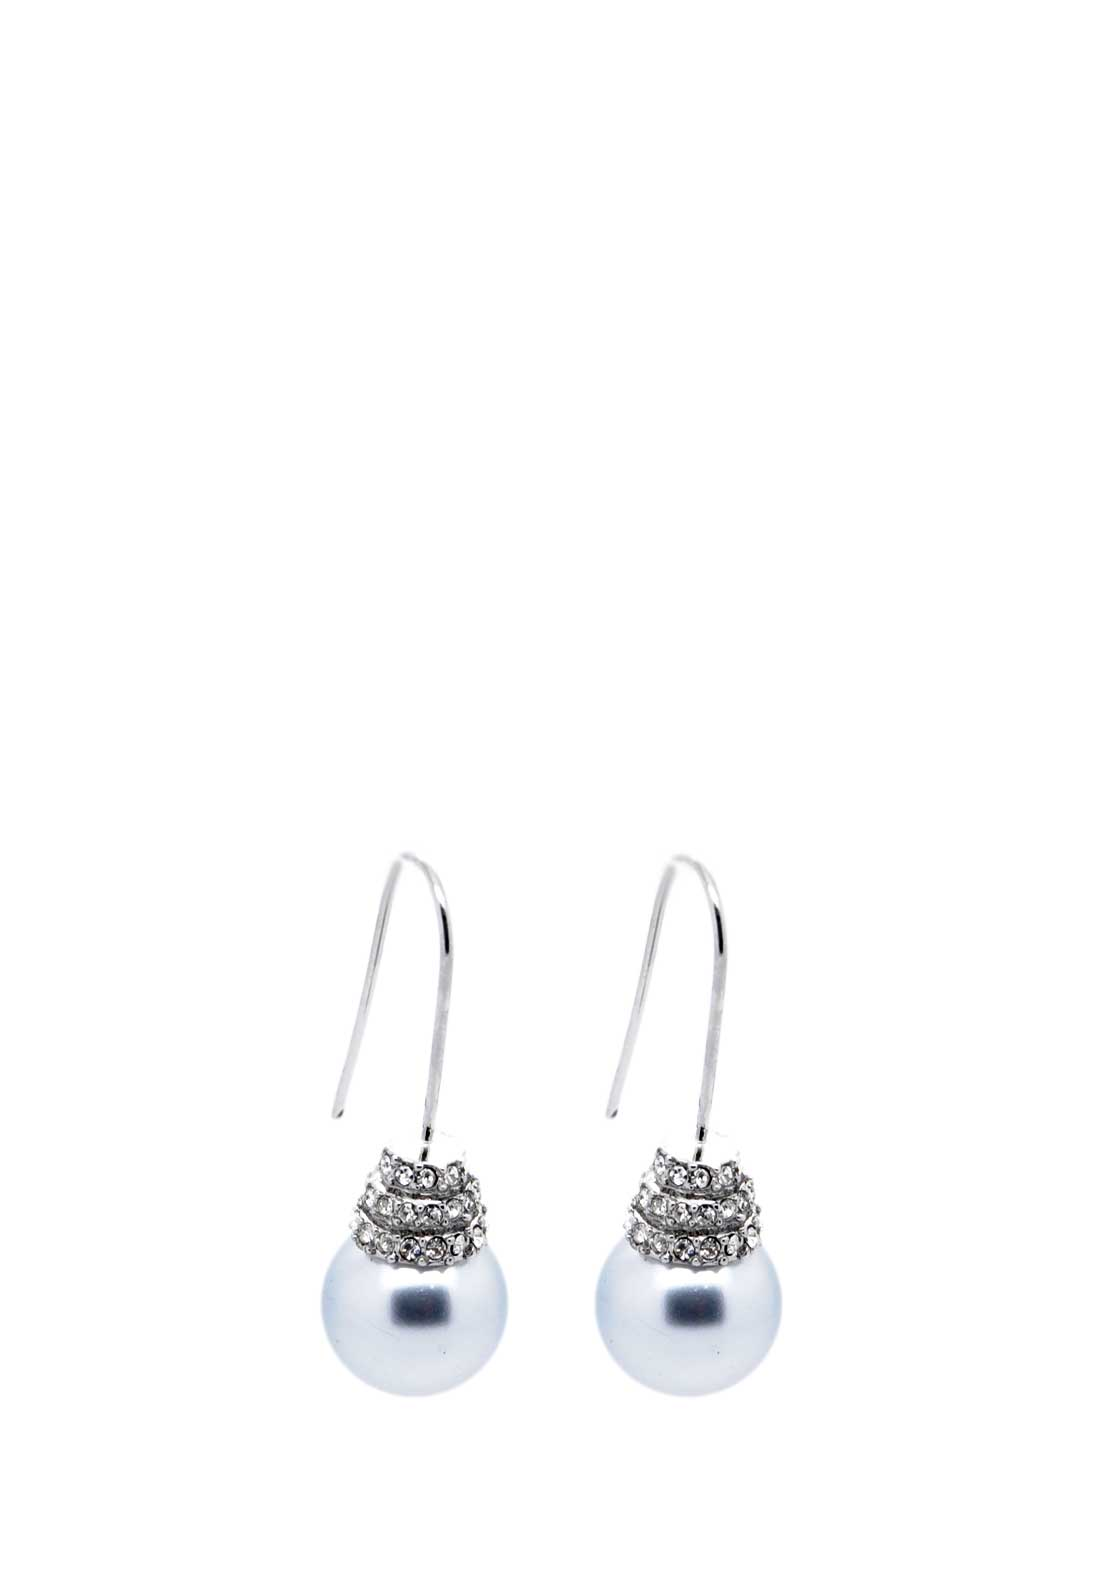 Absolute Jewellery Pearl and Crystal Hook Earrings, Grey